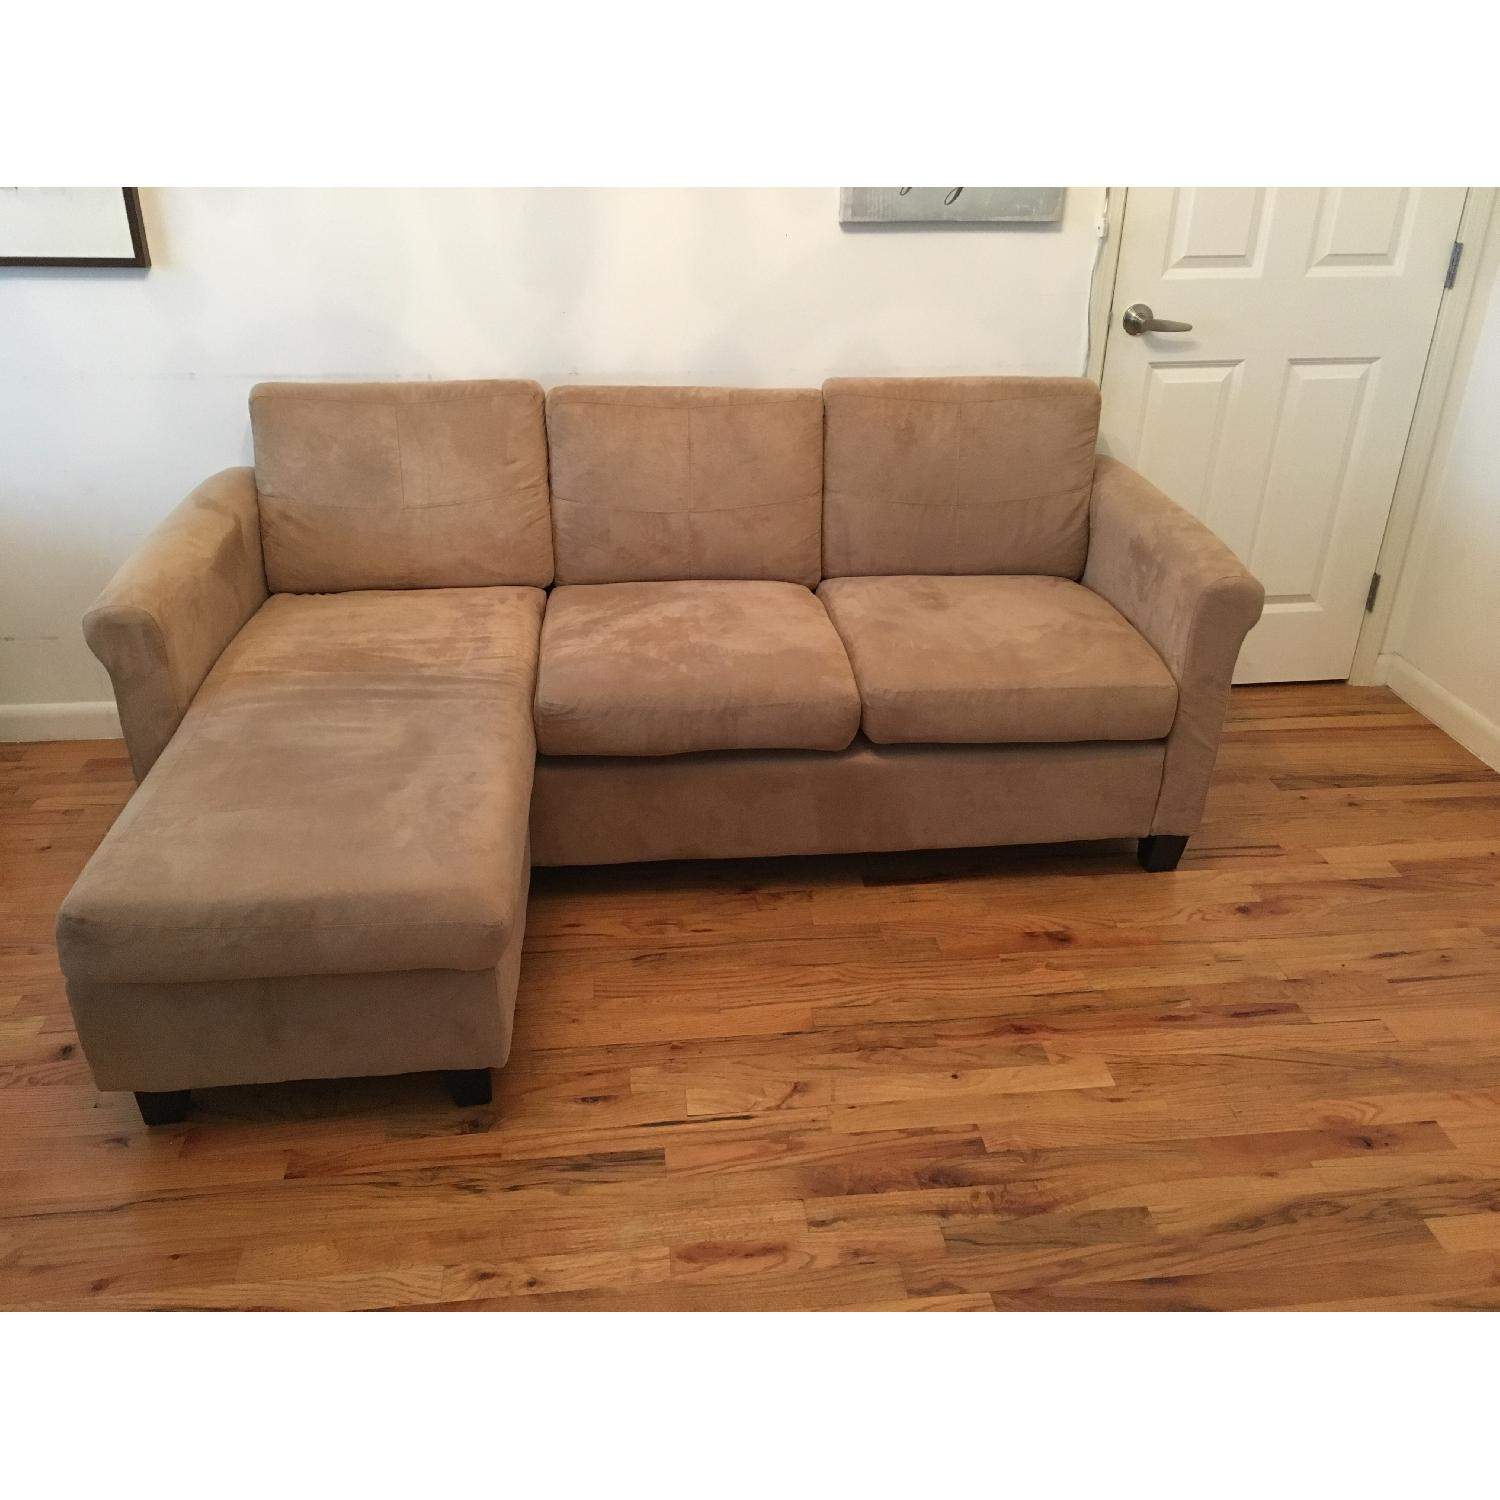 Beige Sectional Sofa - image-1